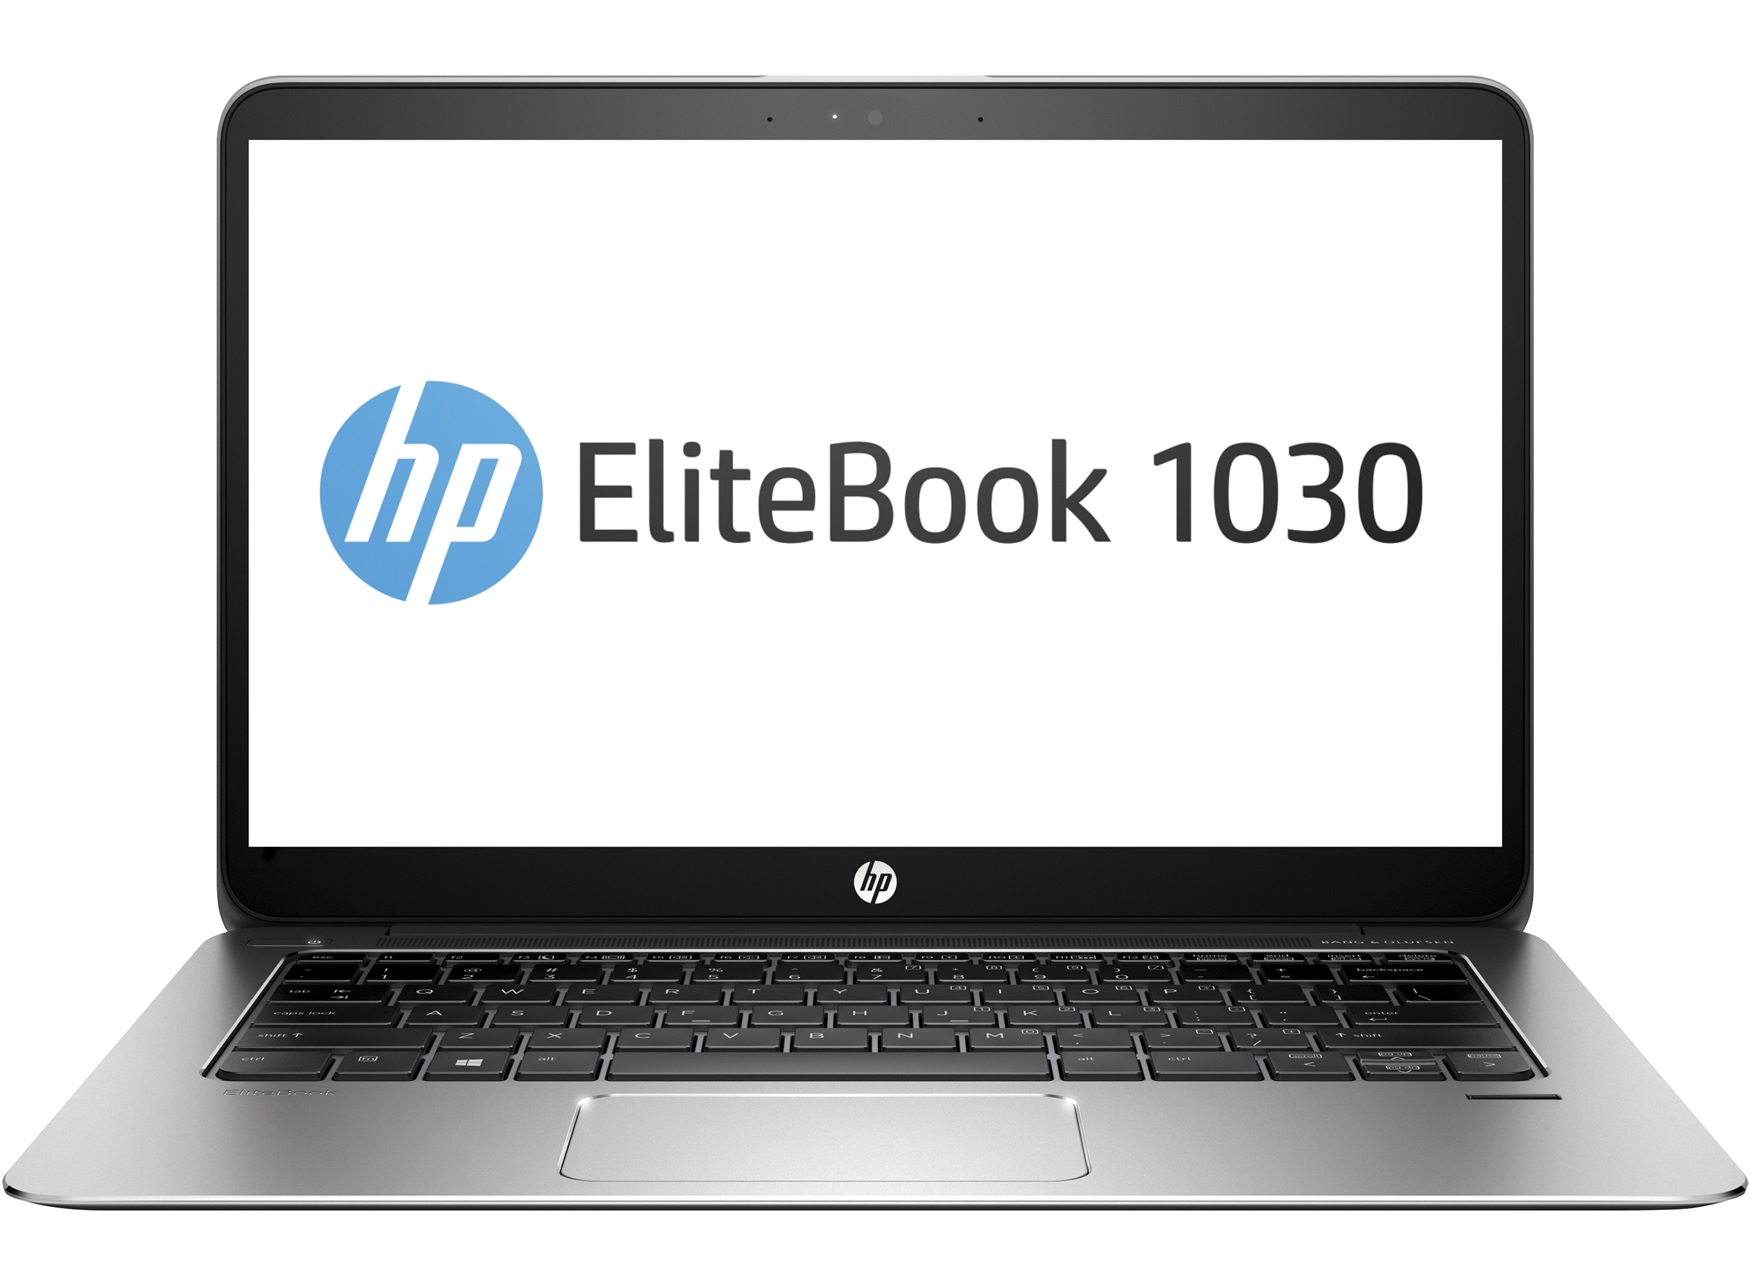 "HP EliteBook 1030 G1 1.1GHz m5-6Y54 13.3"" 3200 x 1800pixels Touchscreen Silver Notebook"